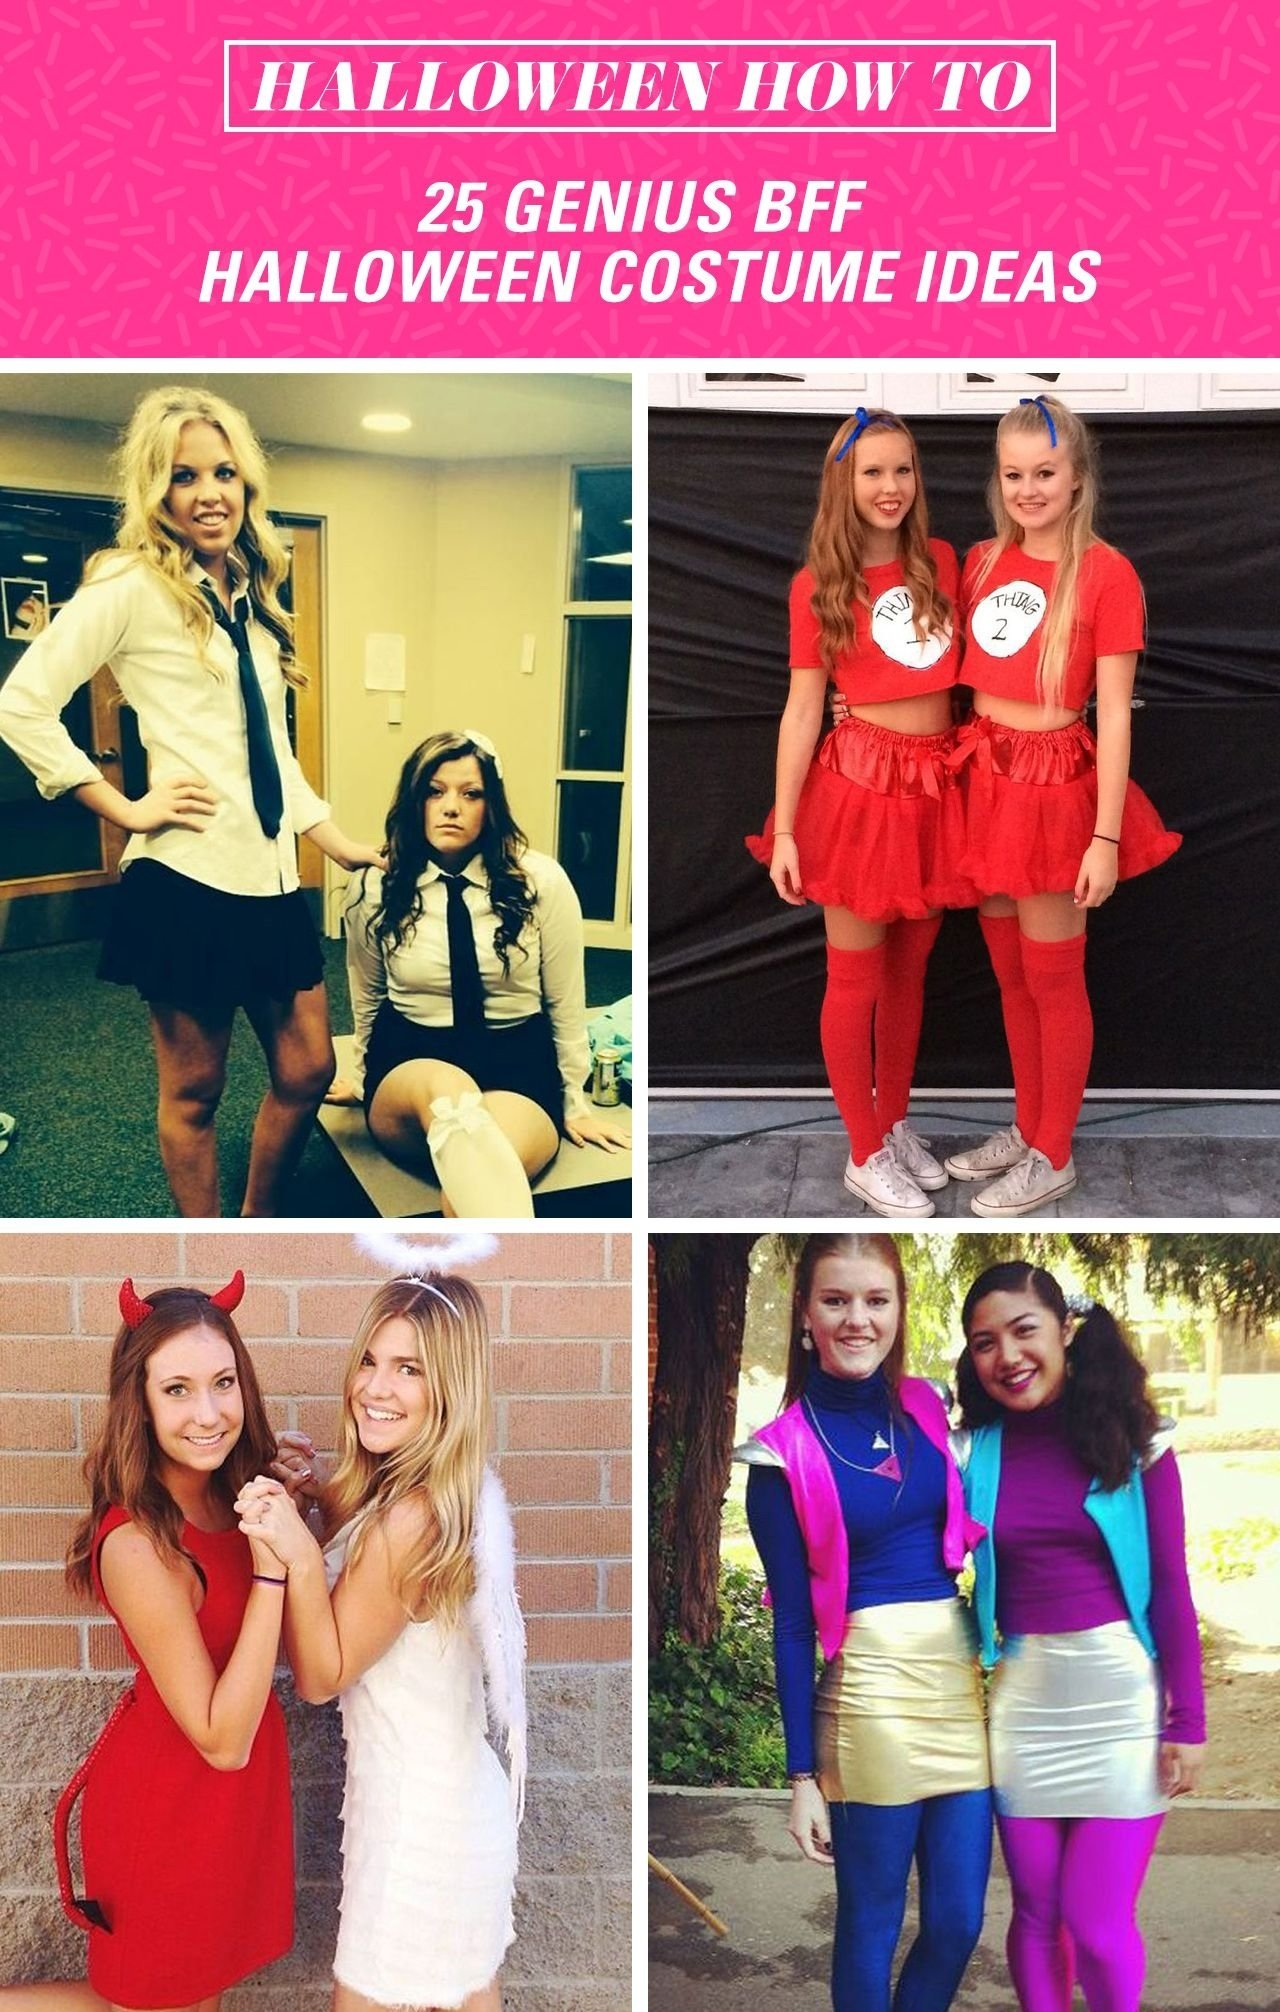 10 cute costume ideas for two girls 24 genius bff halloween costume ideas you need to